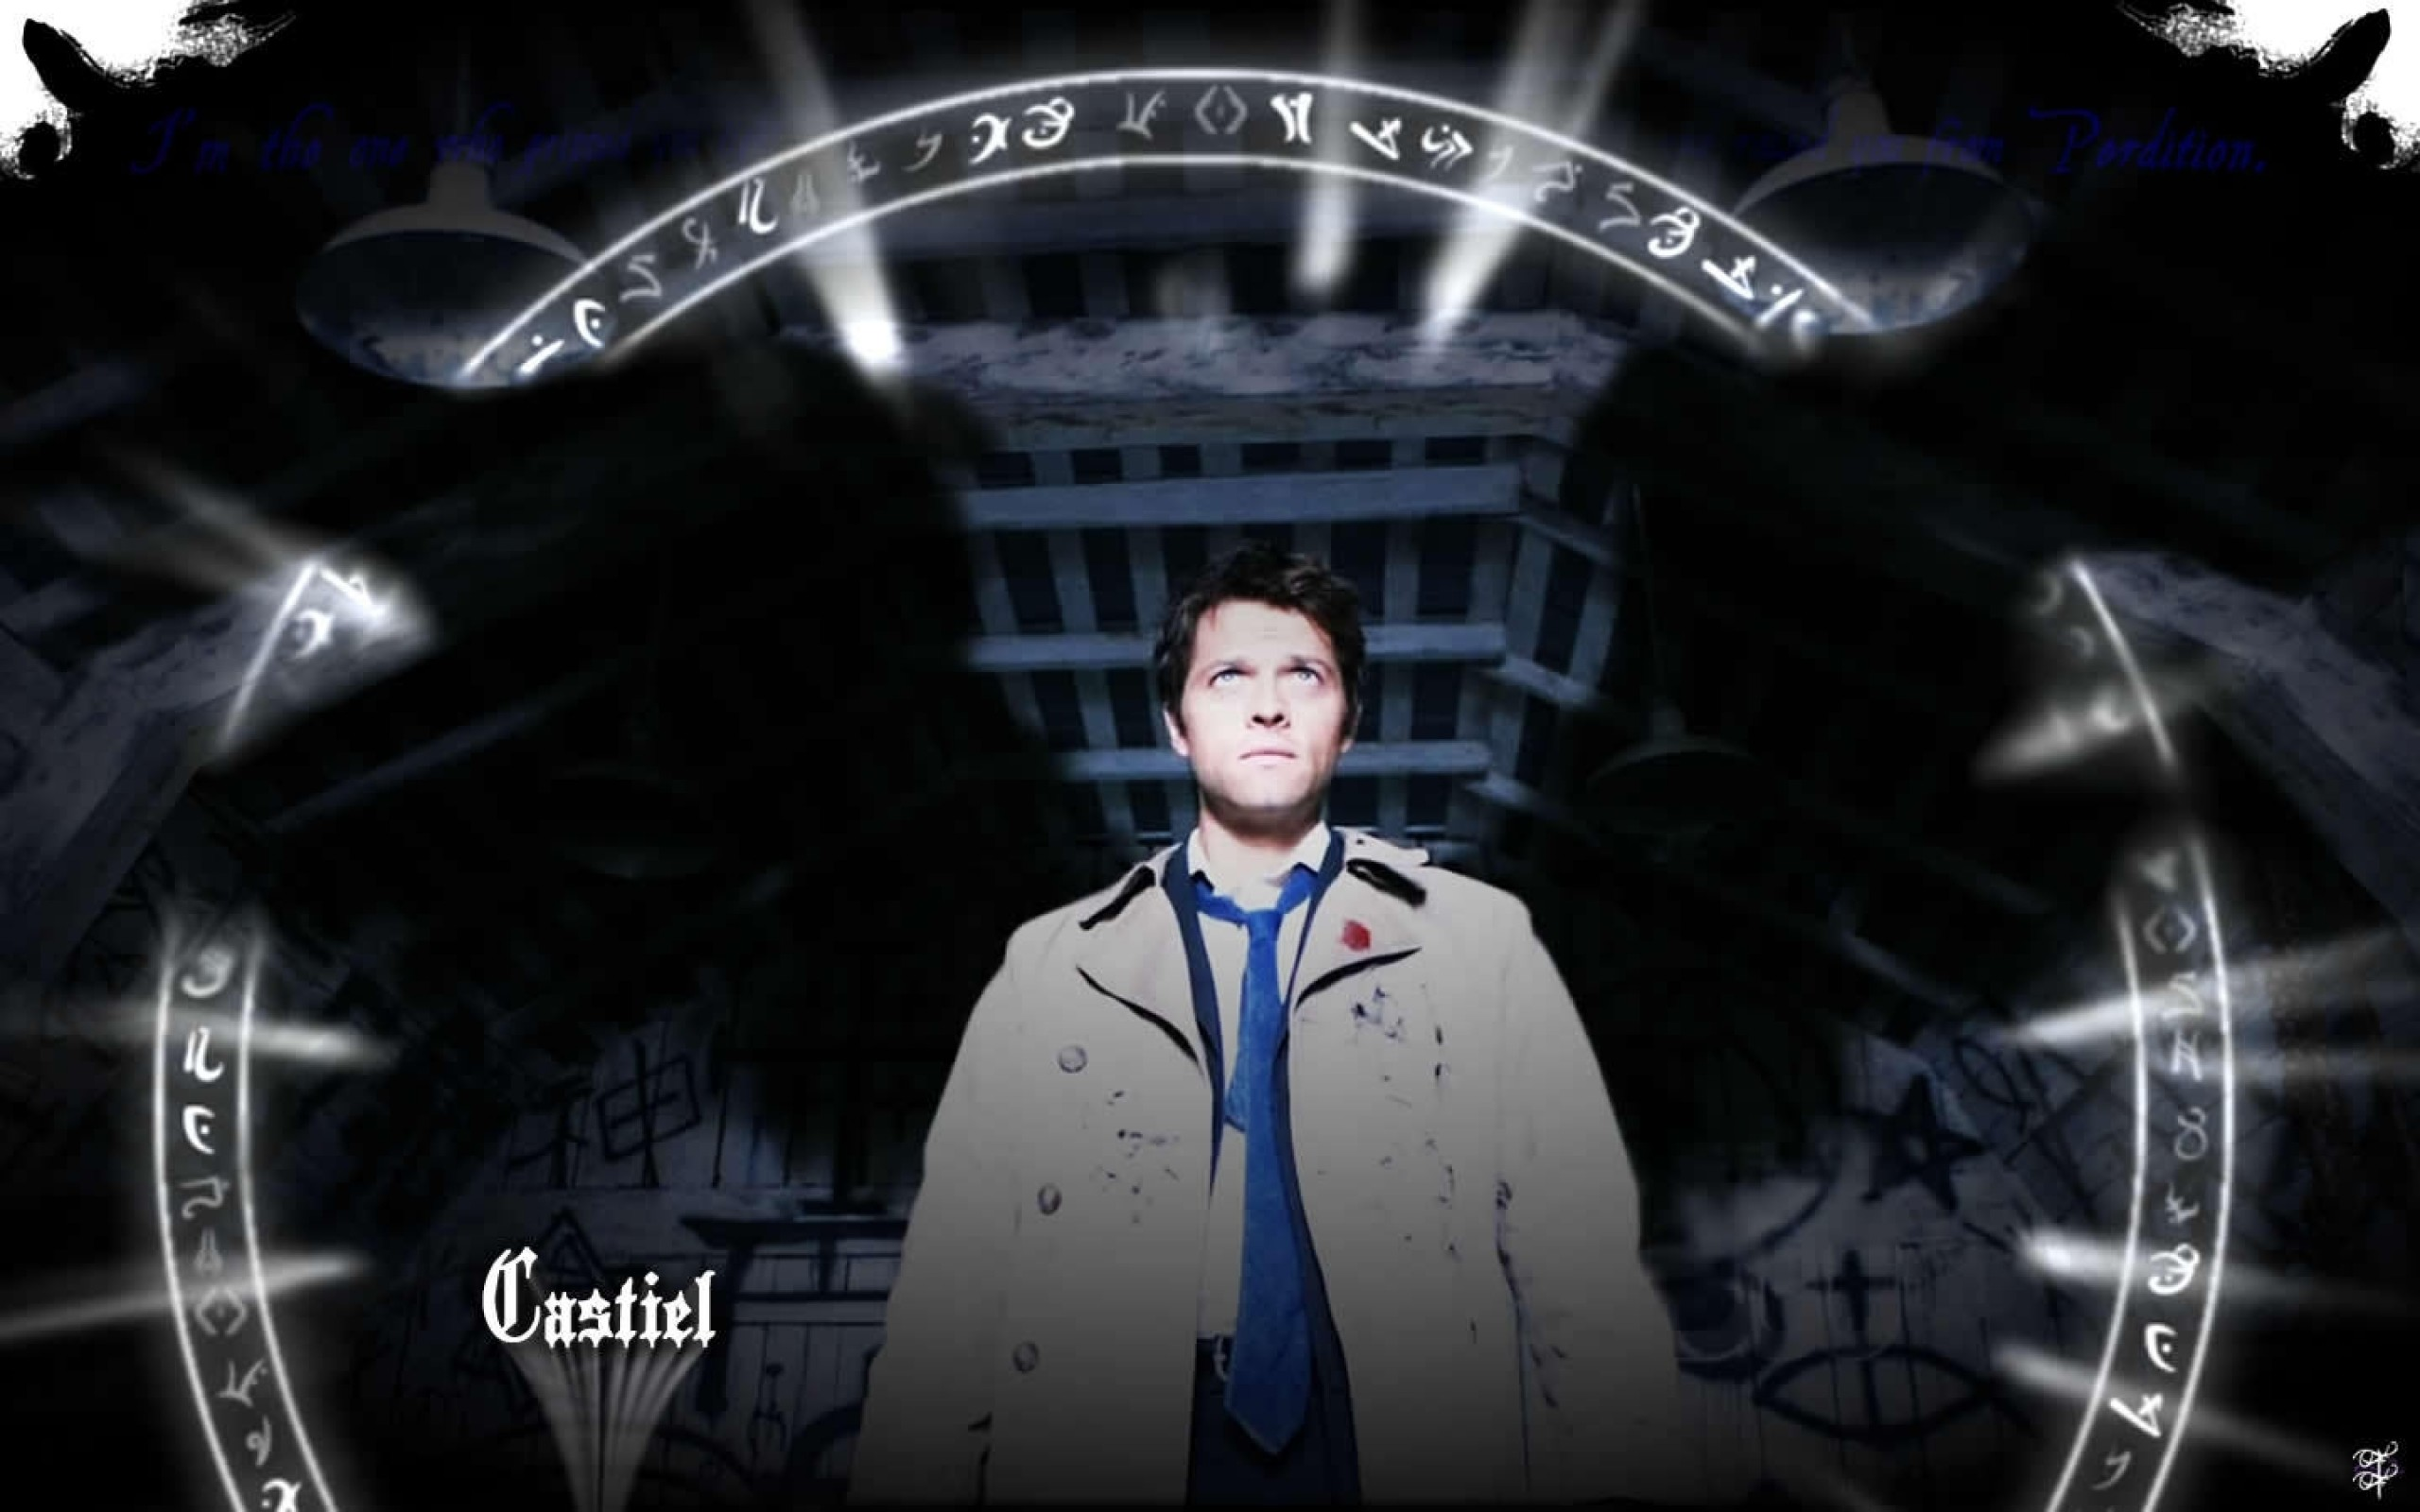 2560x1600 Free Castiel Supernatural Iphone Backgrounds Download - wallpaper.wiki ...